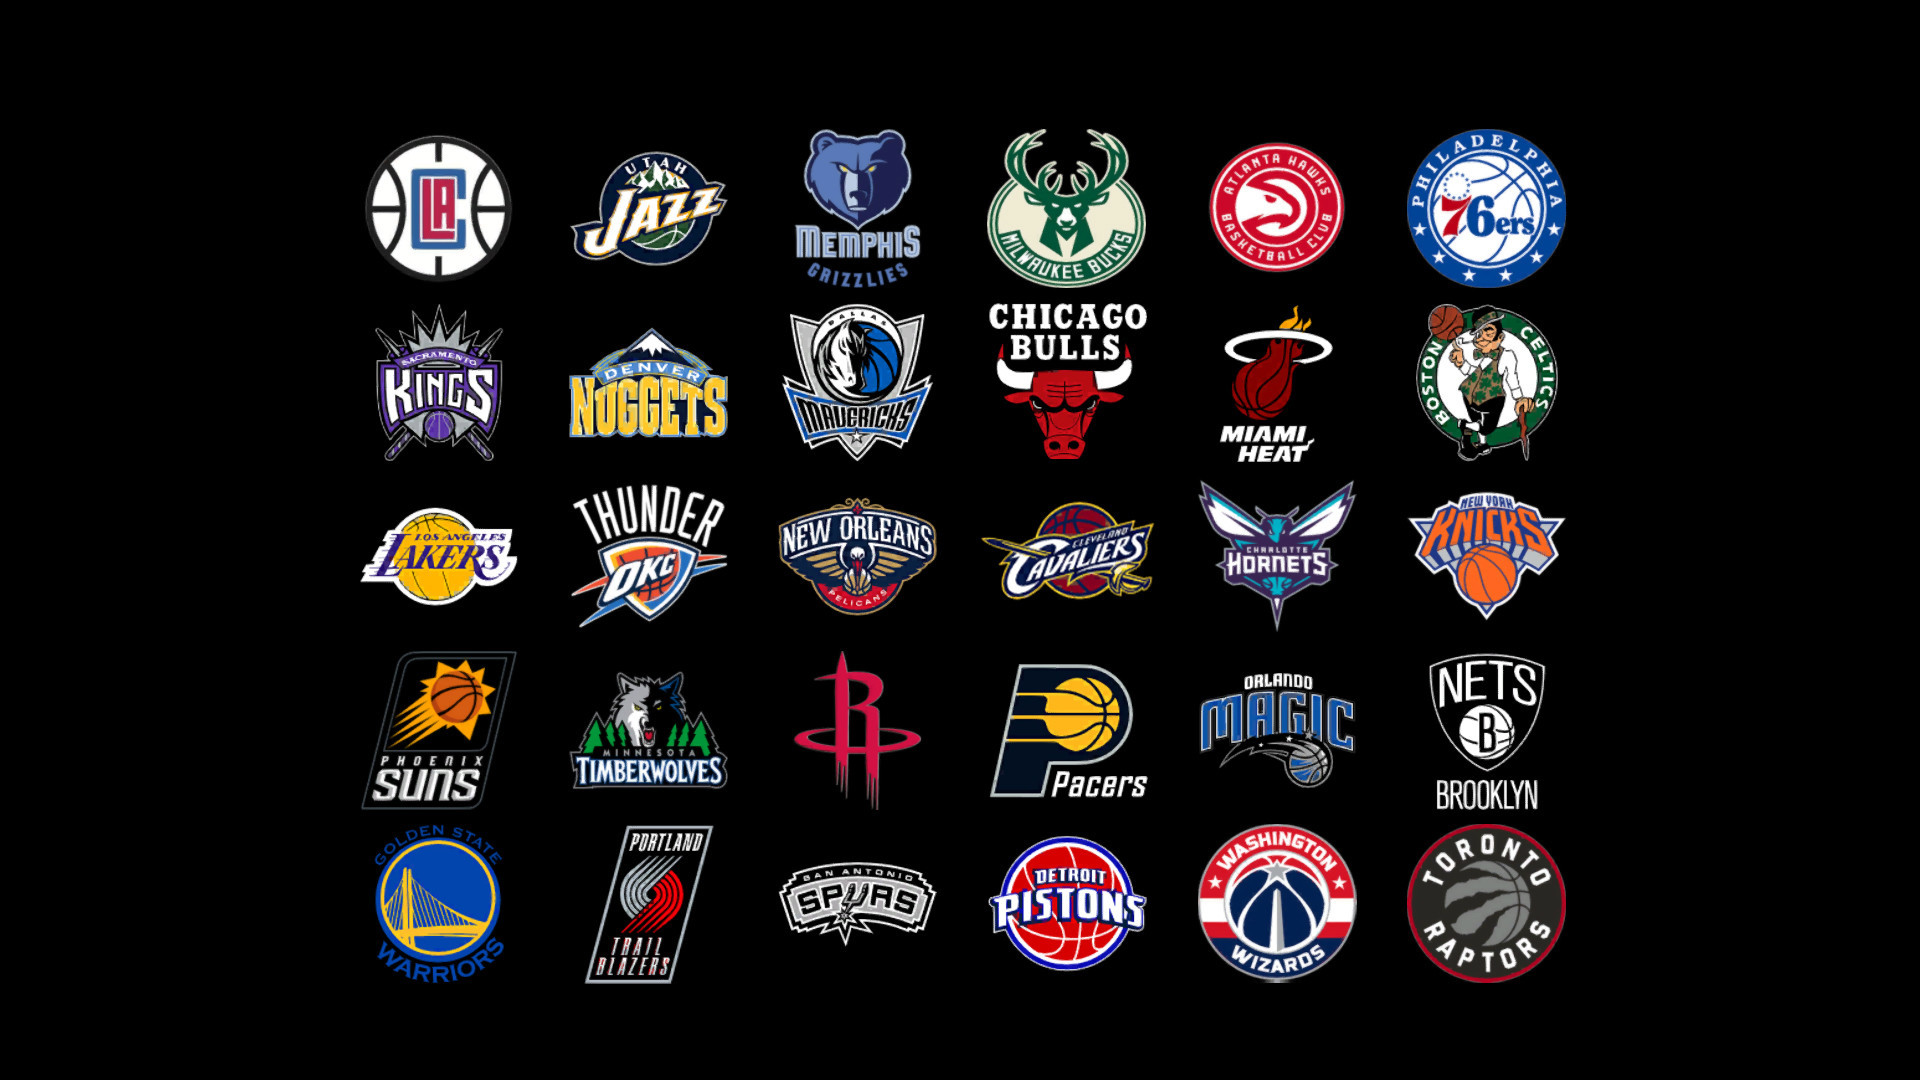 NBA Team Logos Wallpaper 2018 1